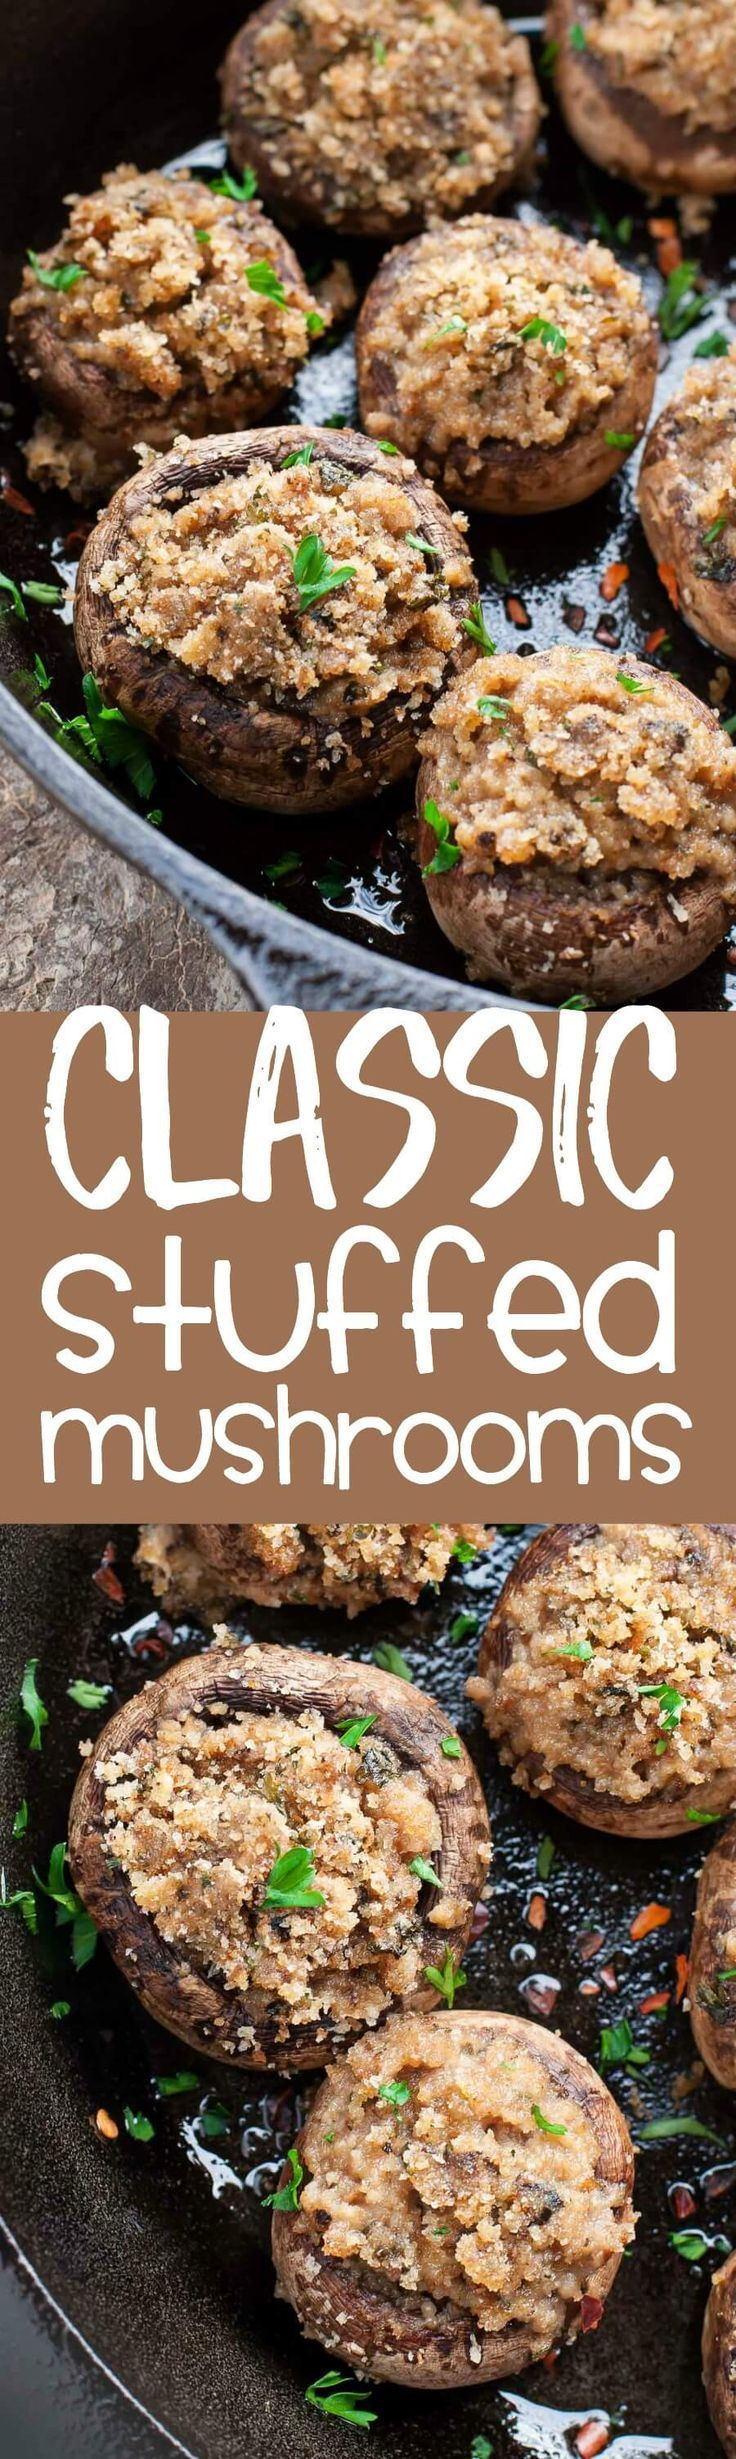 These classic stuffed mushrooms are a total crowd pleaser! Serve them up as a quick and easy party appetizer.